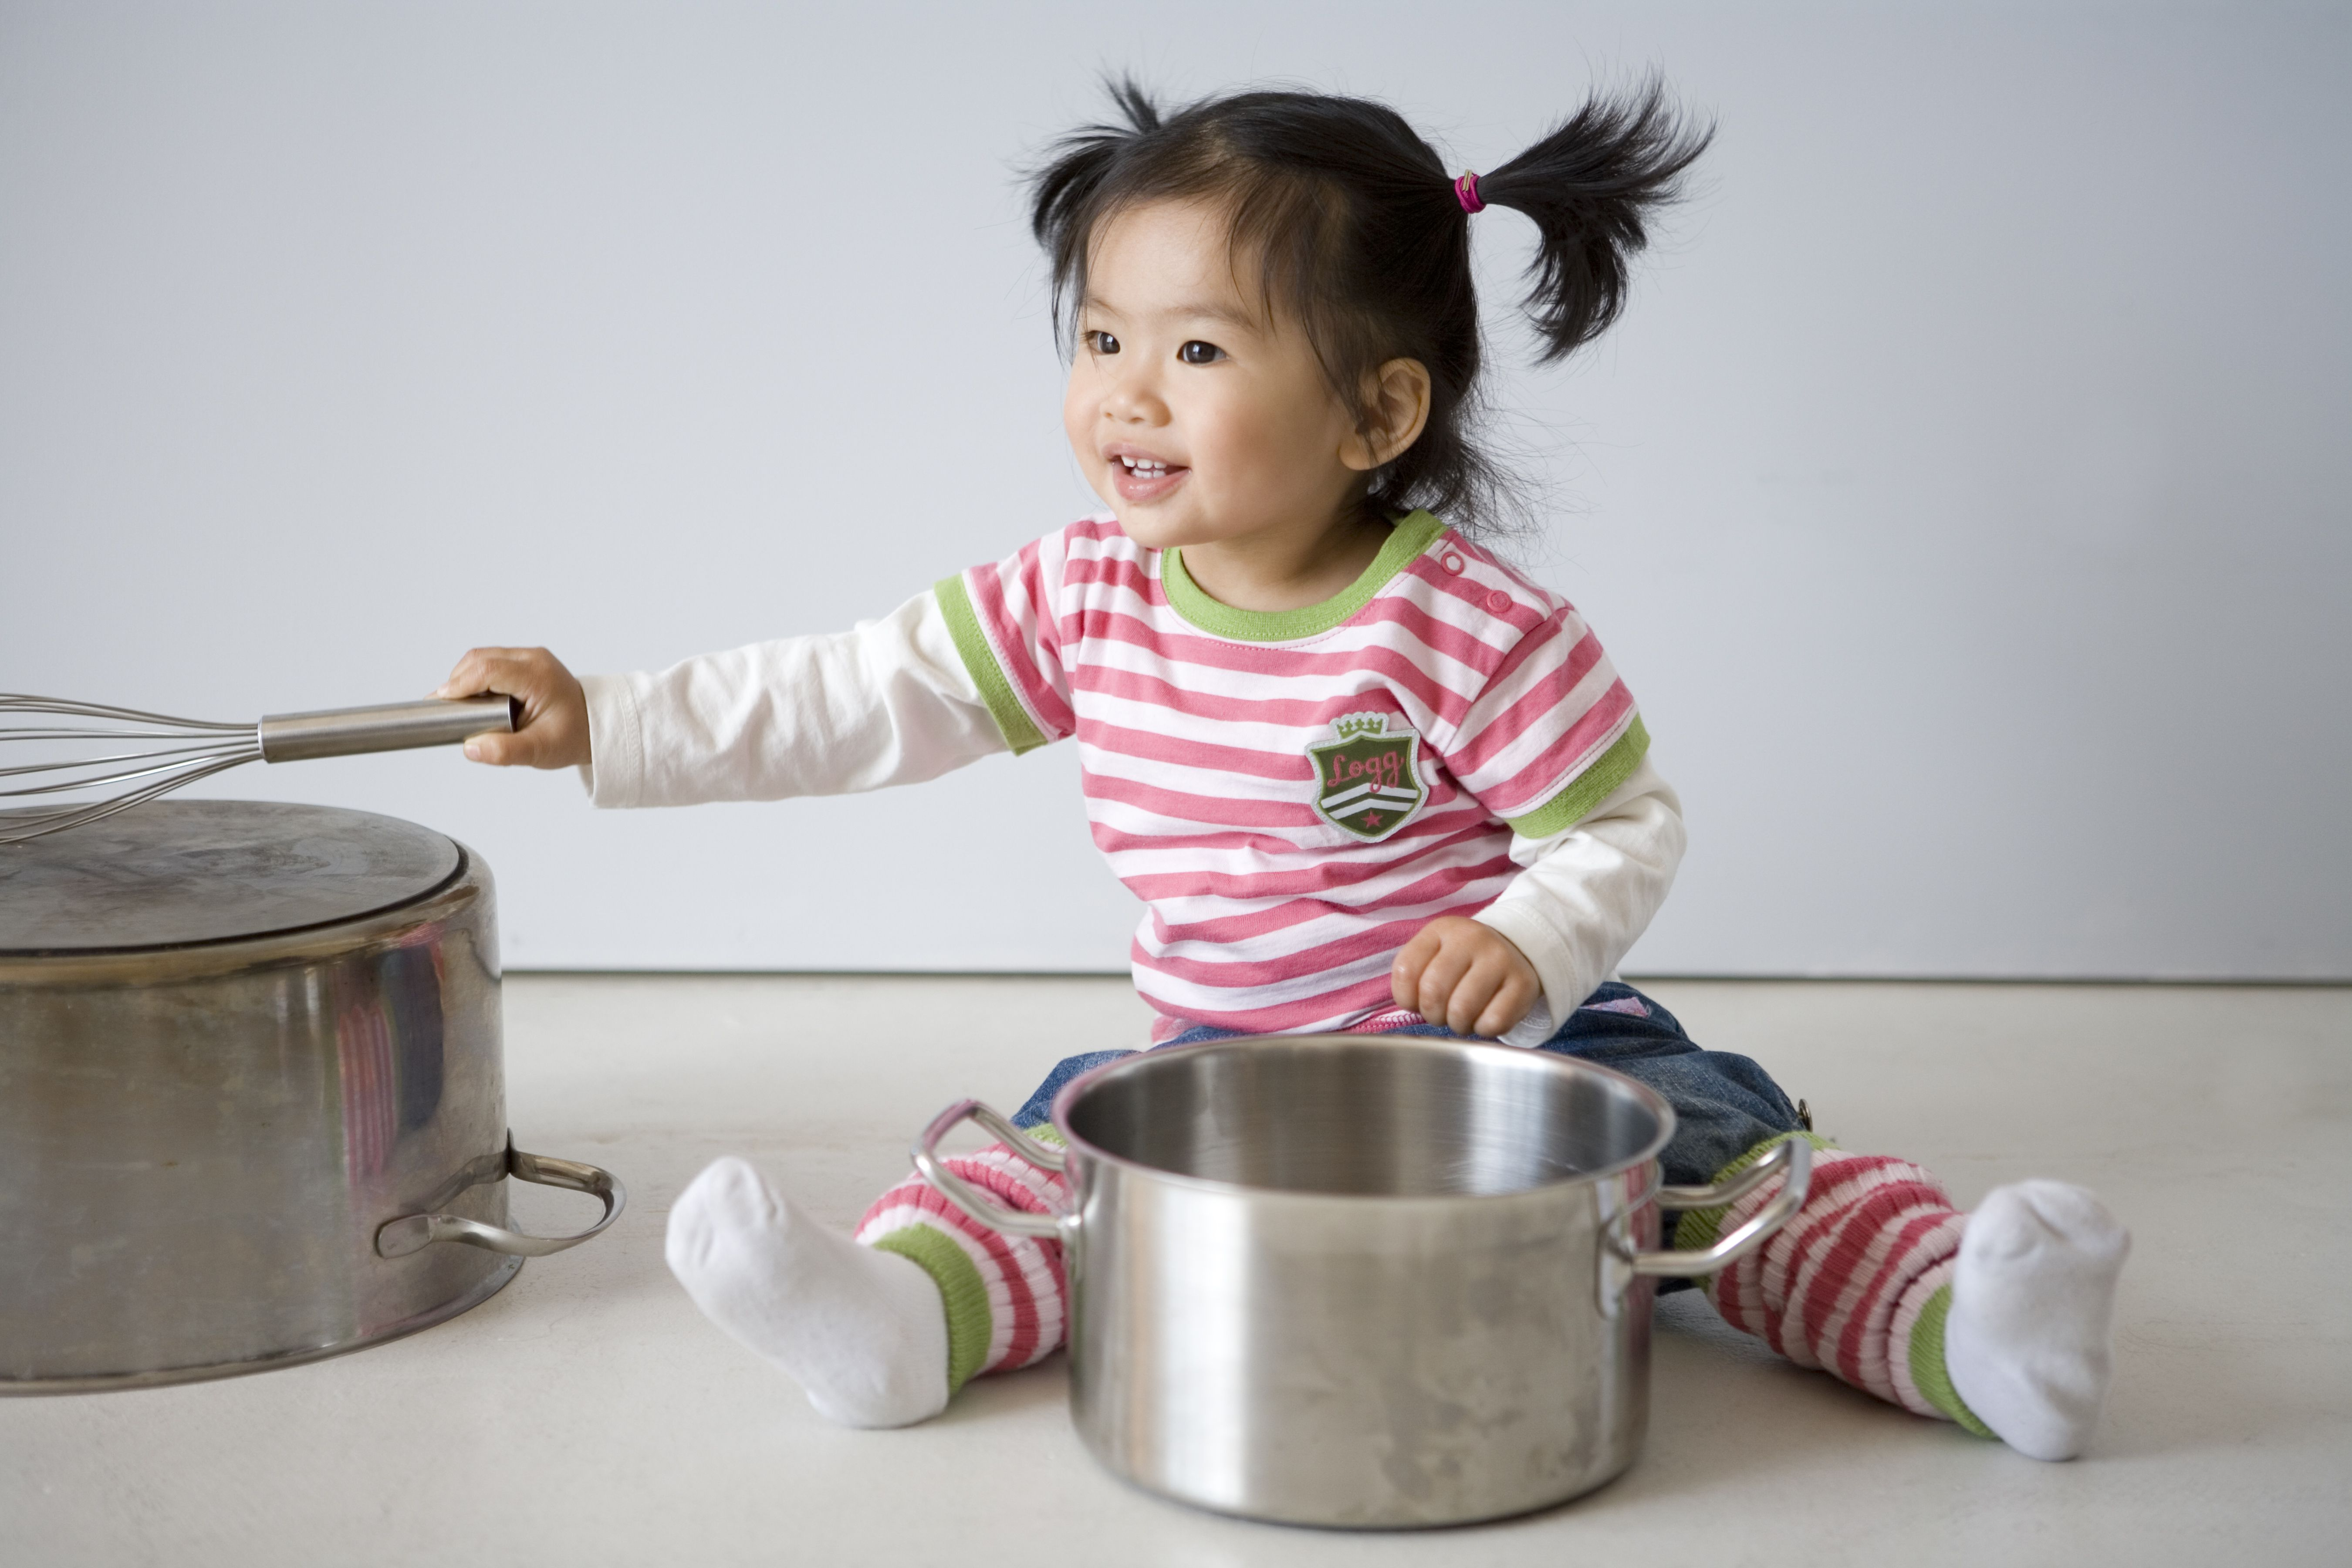 Toddler girl sitting on the floor happily playing with saucepans